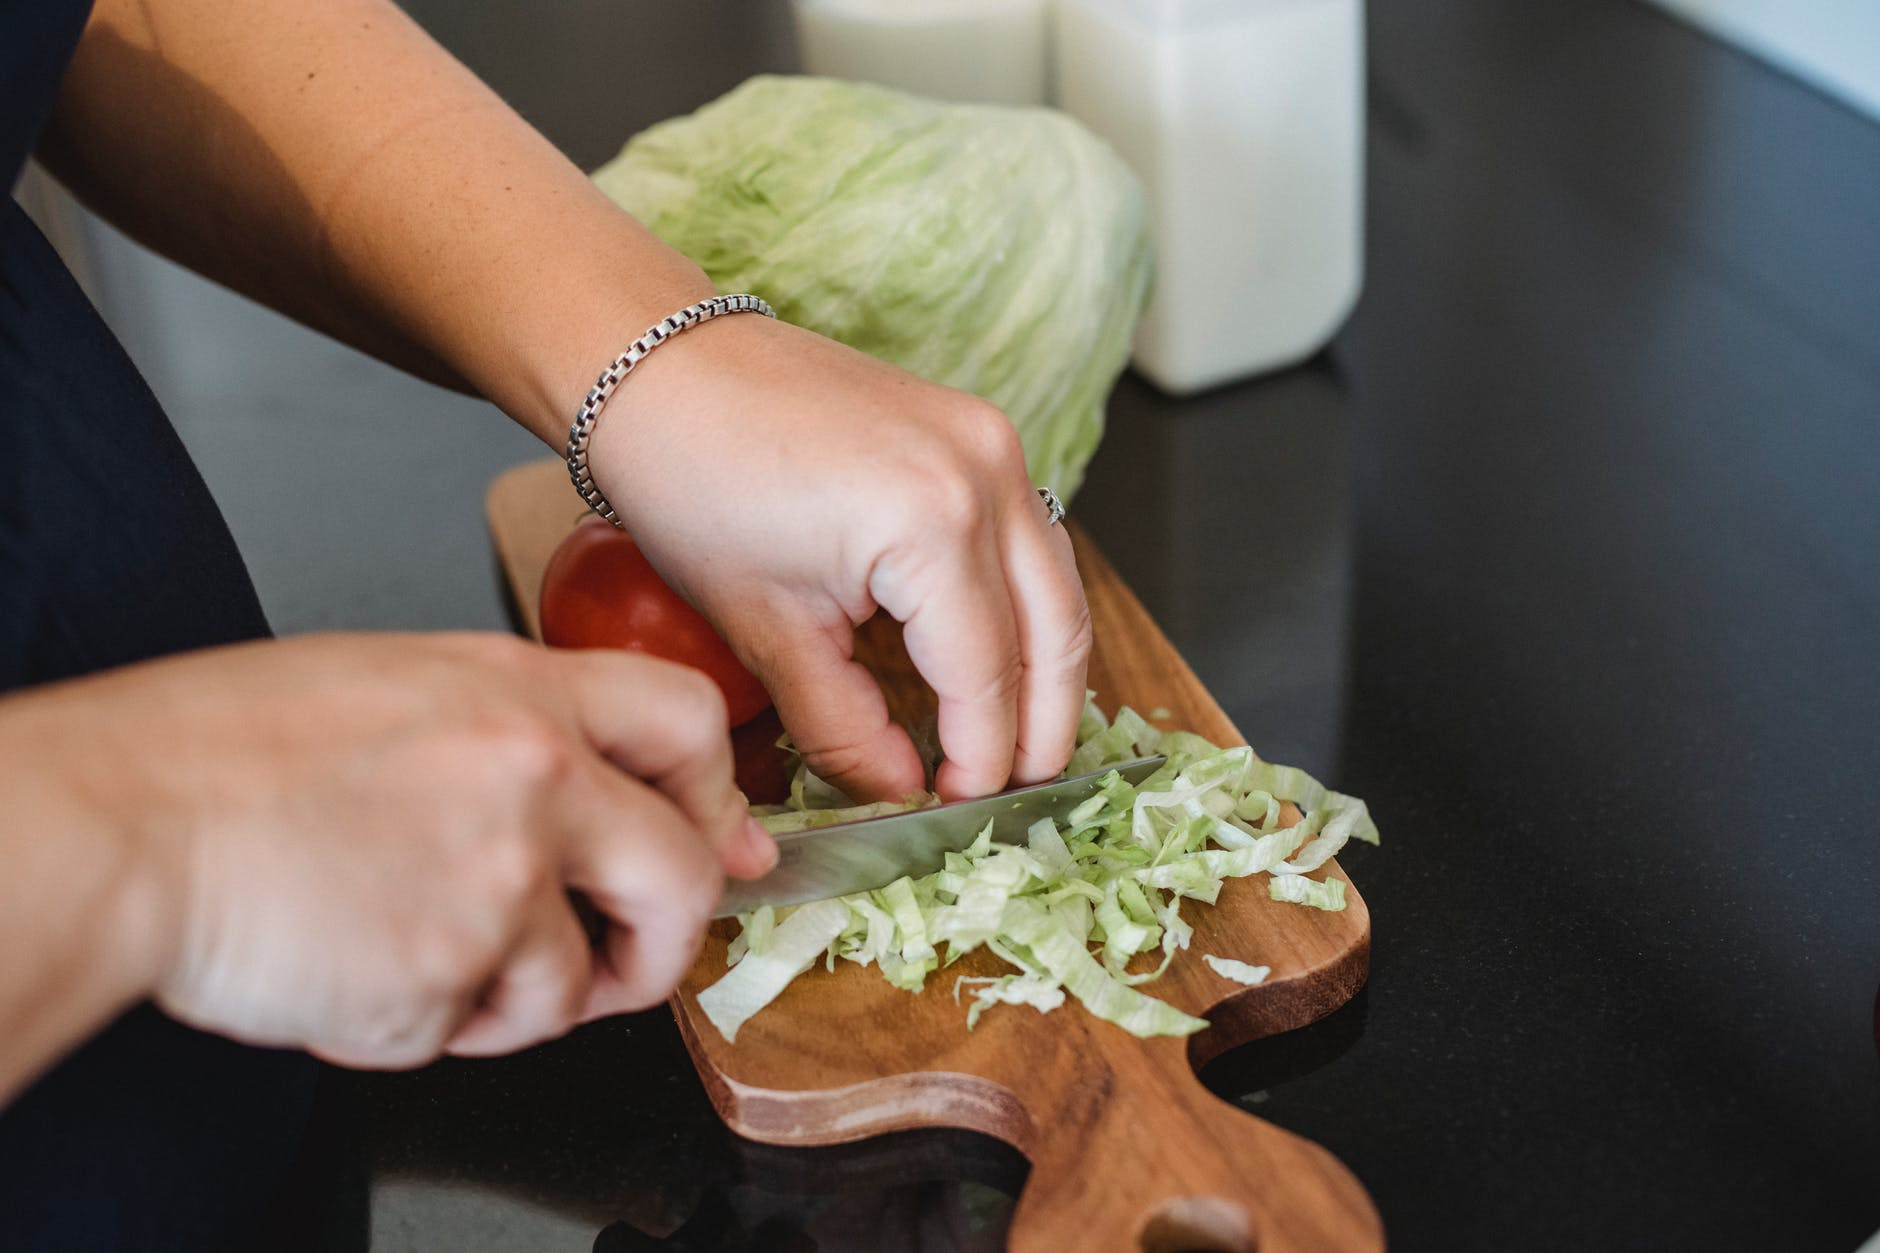 female chopping lettuce leaves for salad